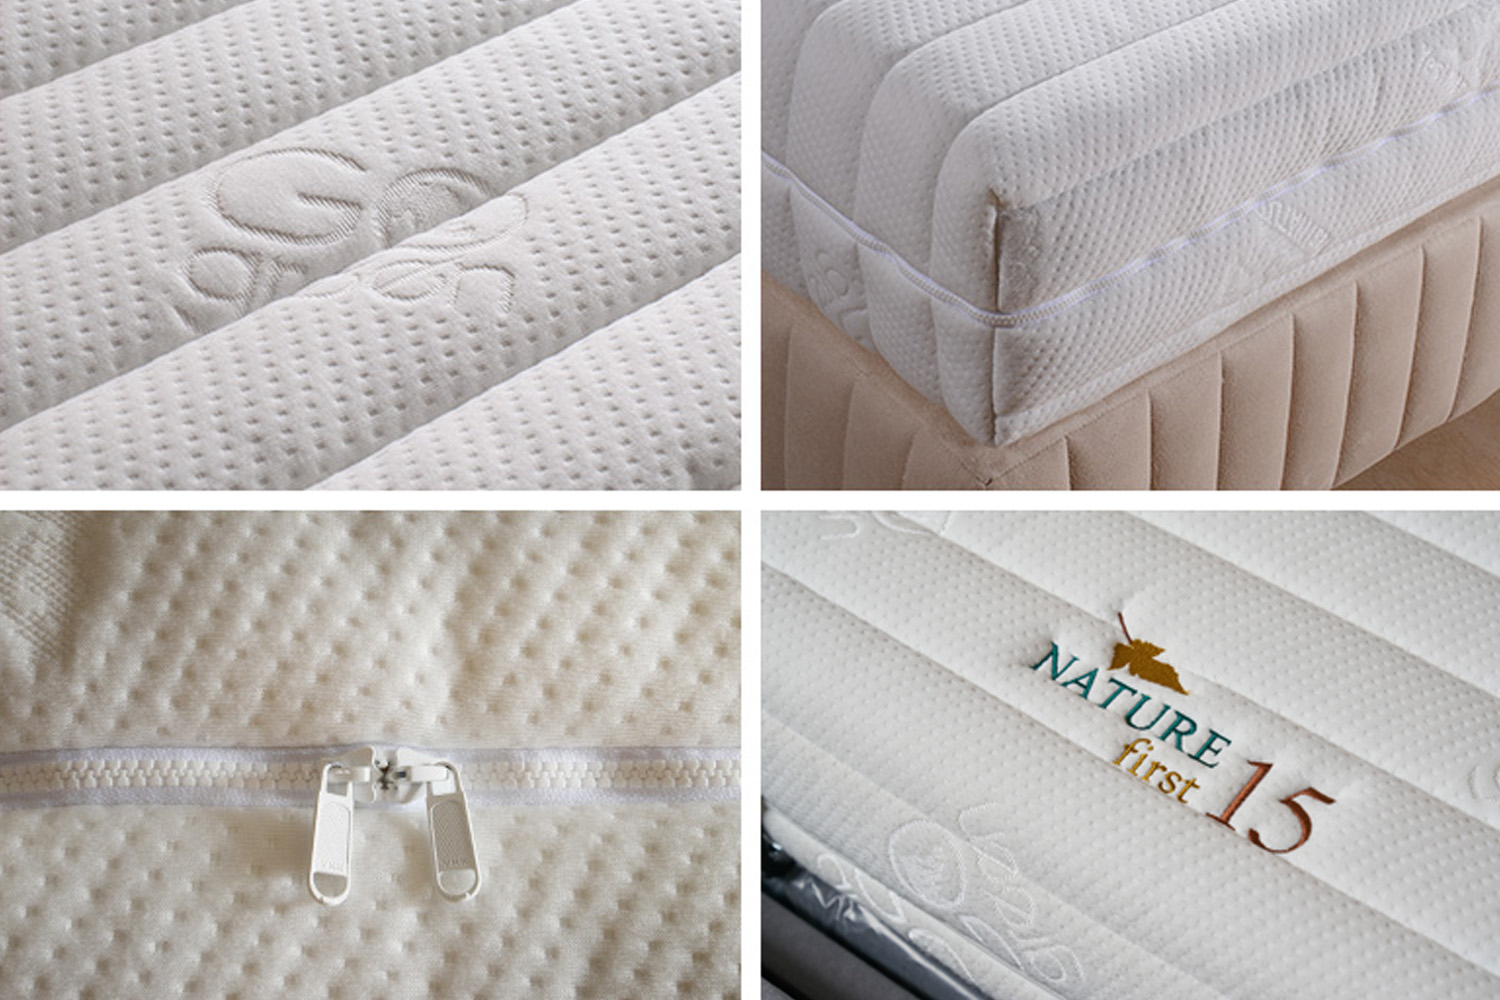 getha mattress natures first comfort3 Home Minimalism